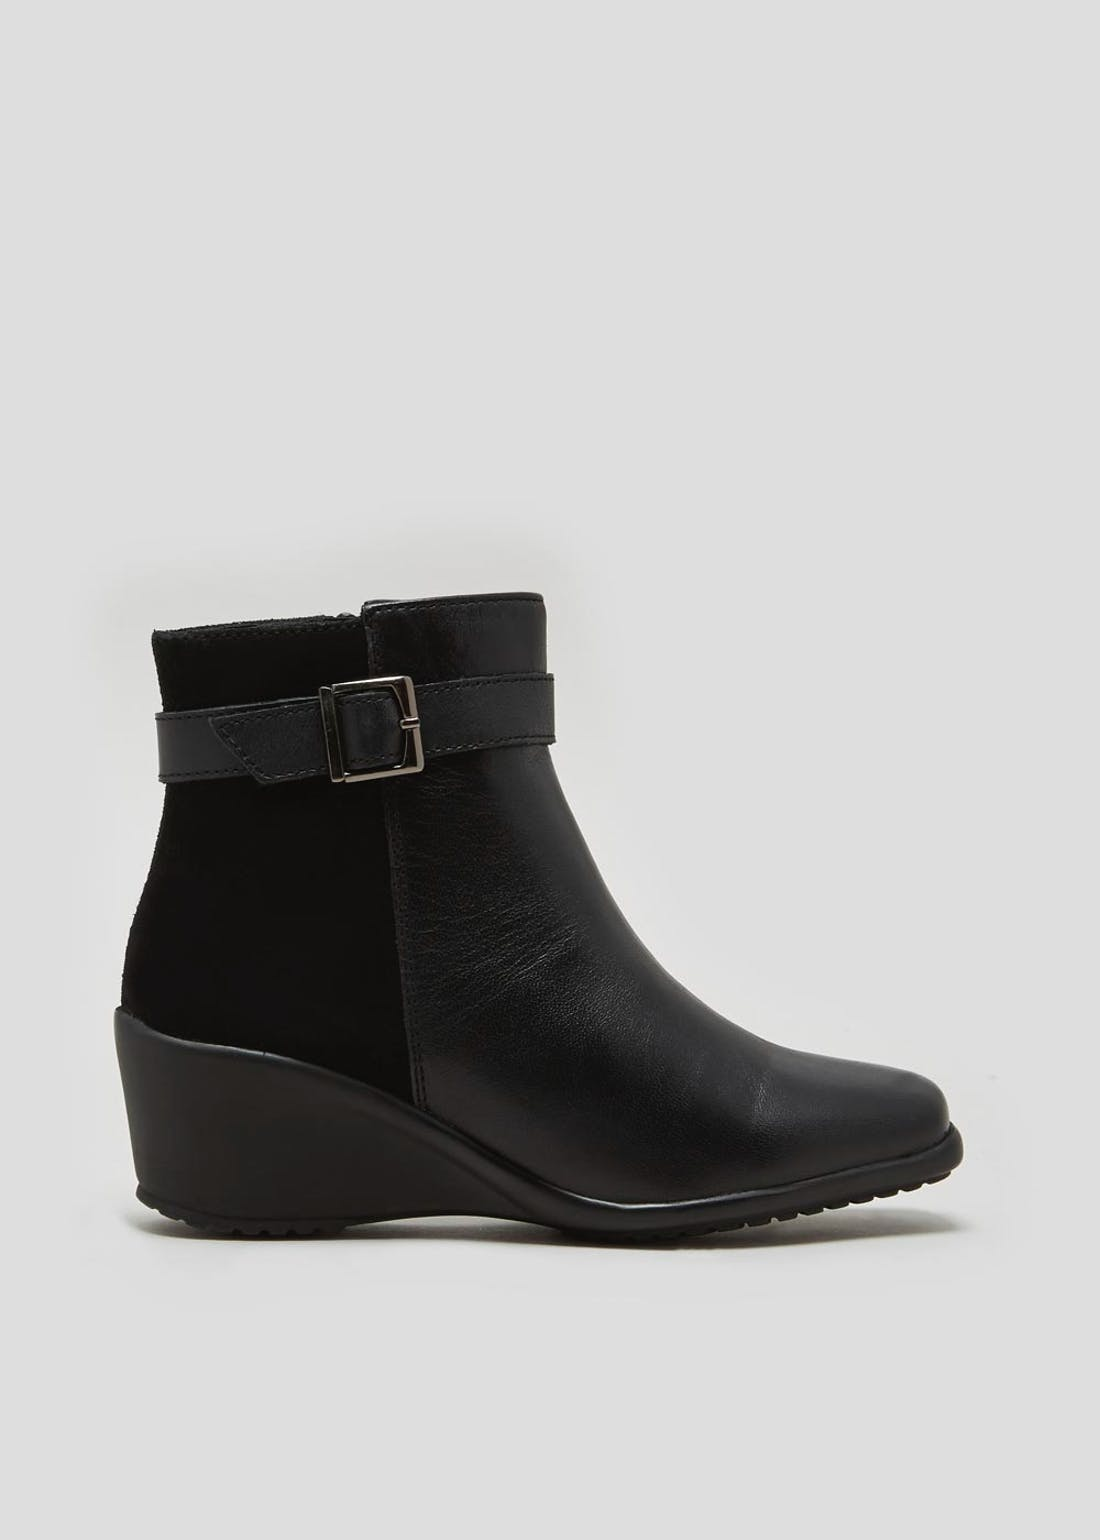 Soleflex Black Wedge Ankle Boots